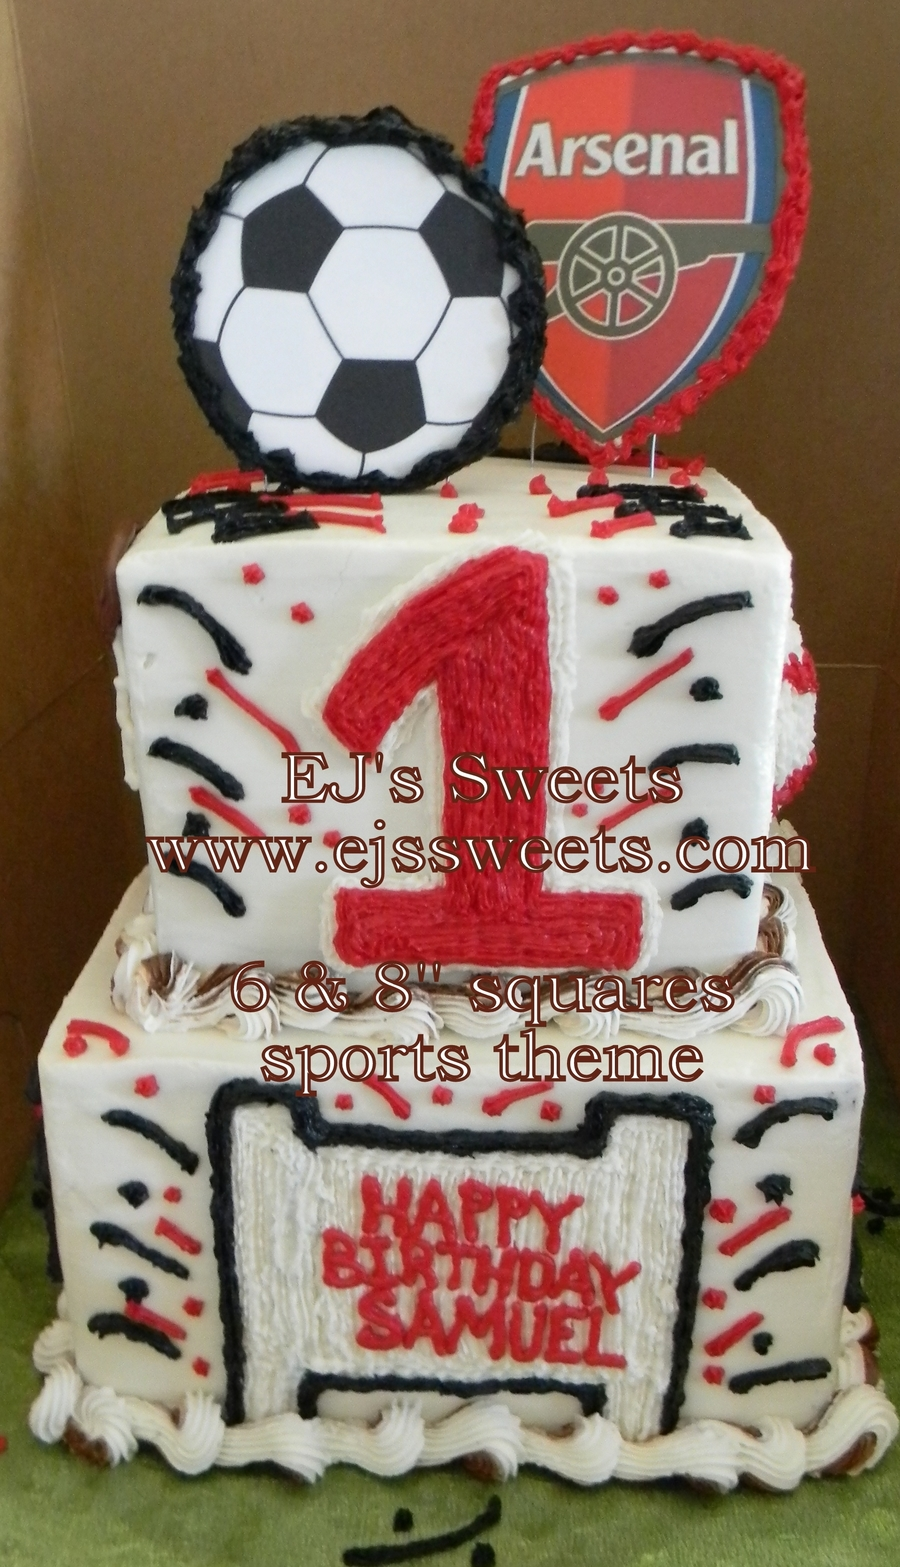 Arsenal Sports Theme 1St Birthday Cake CakeCentralcom